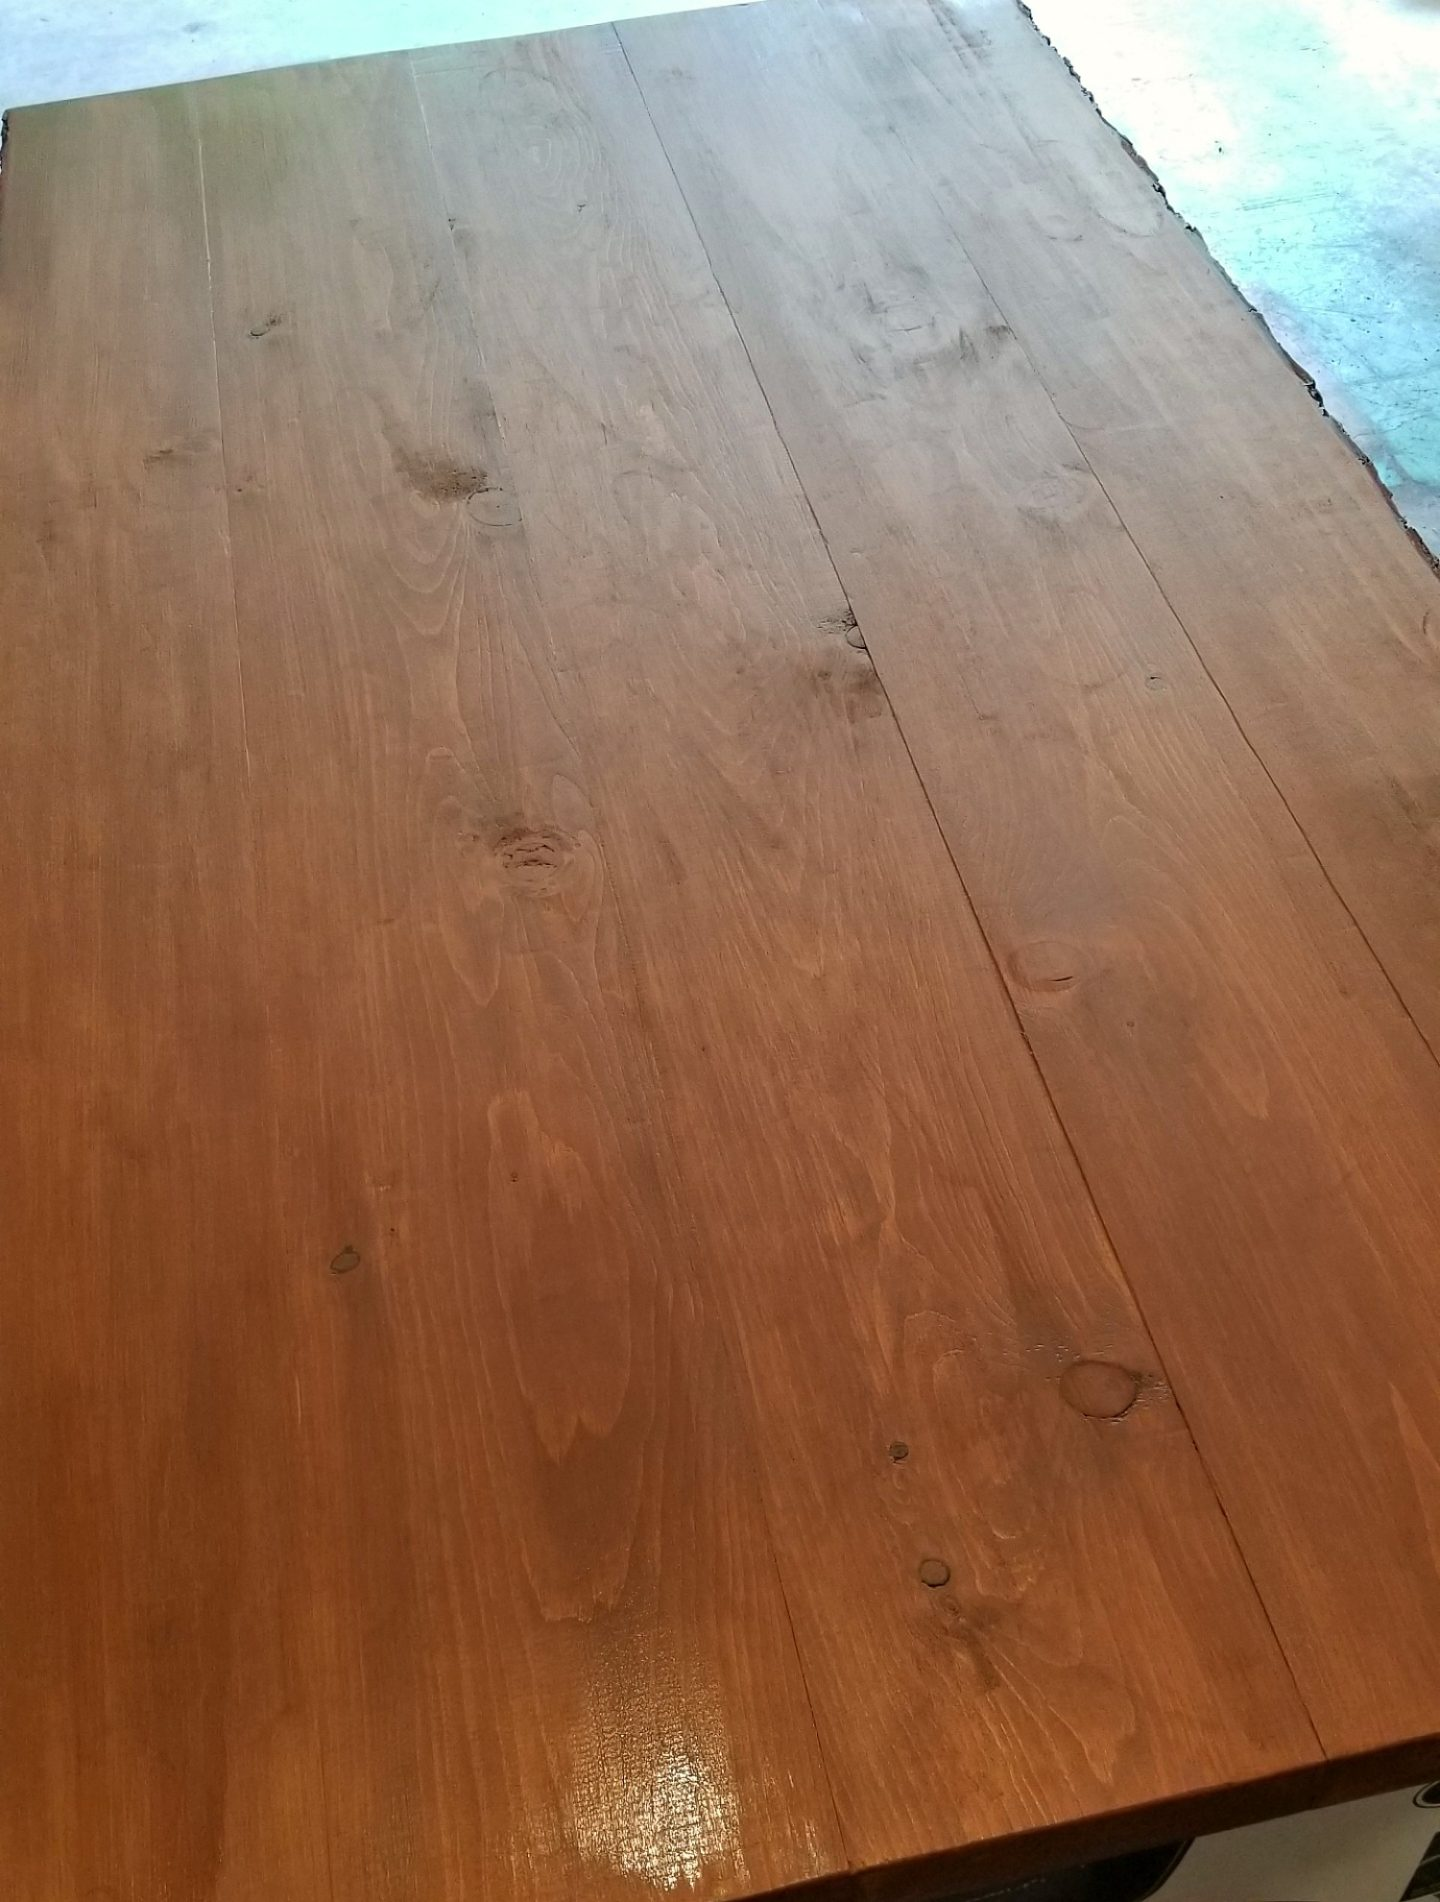 Chestnut Wood Stain on Solid Pine